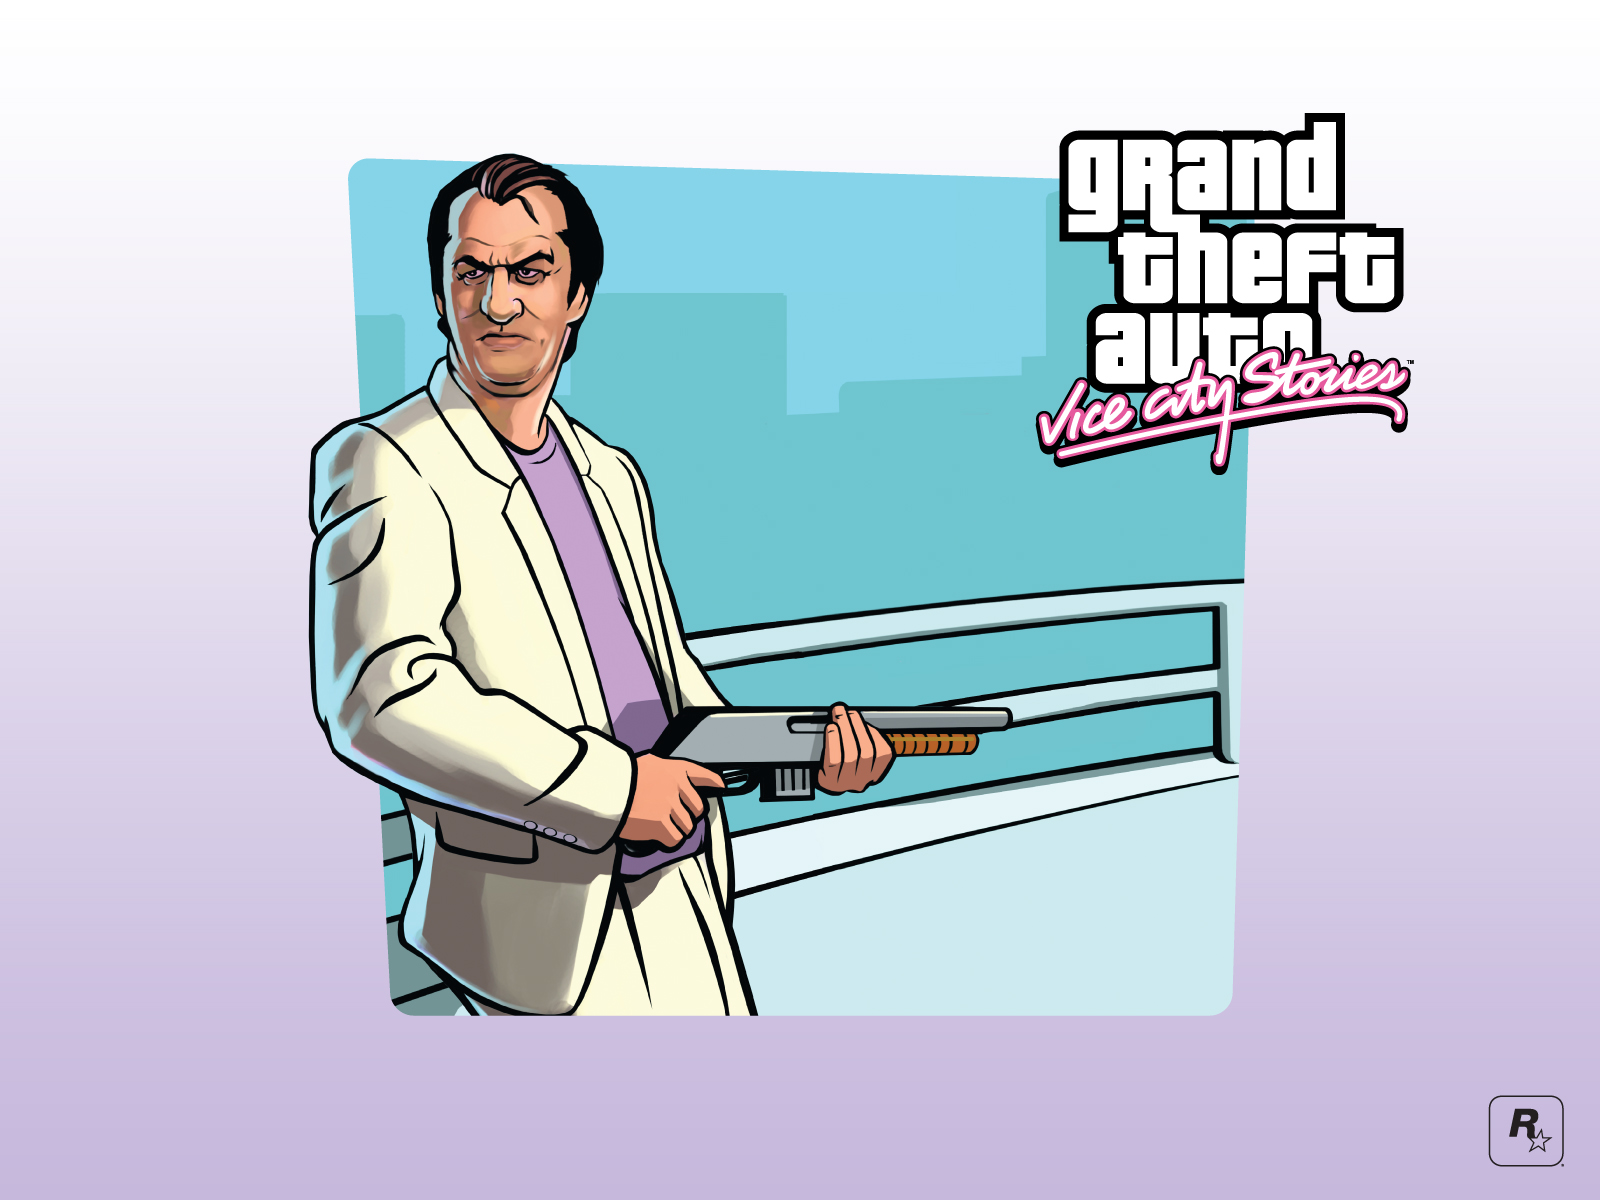 Grand Theft Auto Vice City Stories 2007 Promotional Art Mobygames